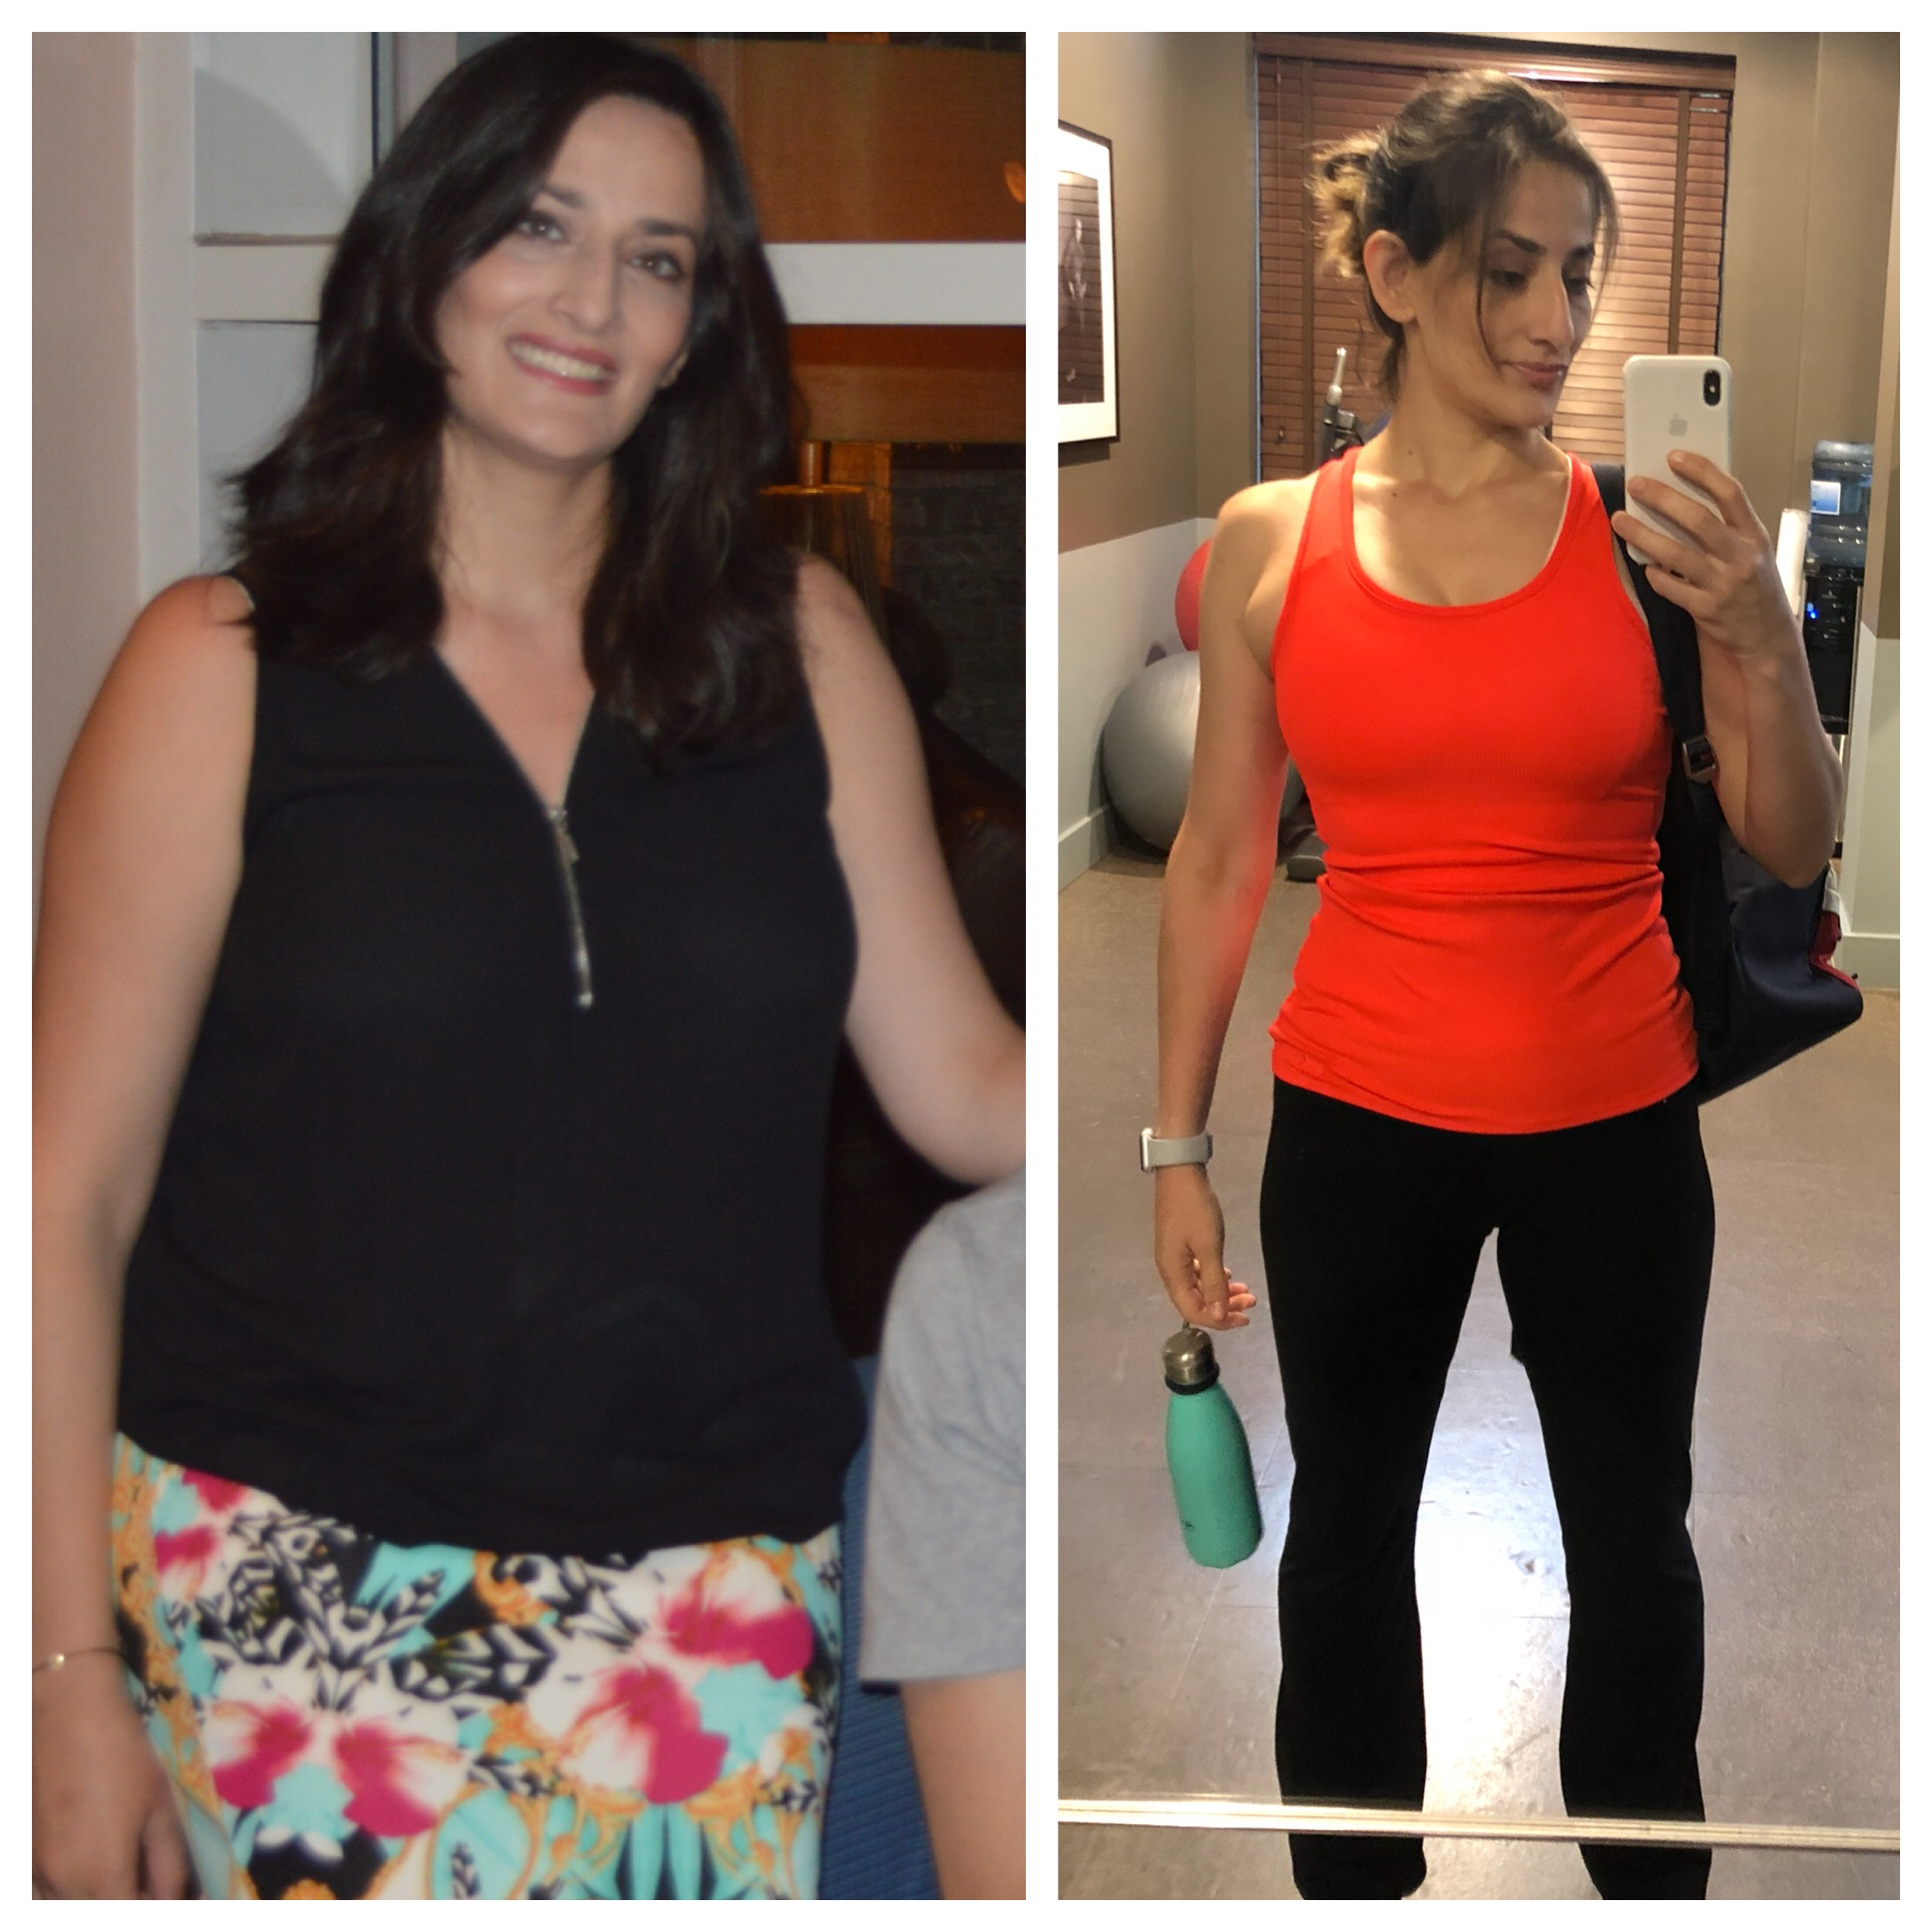 MY FITNESS JOURNEY,   On the left is me in 2016. Who took care of everyone in the family. Trying to fix my sons severe eczema and allergies holistically. Taking care of a demanding toddler. But never had or made time for my own health. I gained 20 lbs 6 months after I gave birth because I was stressed, my hormones were imbalanced, always grumpy and moody. I was an emotional/ binge eater, I felt like a failure most of the time because I felt like crap about my body and I wasn't able to fix my sons skin issues, he was in constant pain so was I, I was depressed. This cycle continued for a while, and I continued to gain weight until I was able to take charge, educate myself about how food works in my body. Macros based dieting saved my life. I lost 35 lb without restricting myself of any food chains.     WHAT IS MACROS BASED NUTRITIONAL STRATEGY?   Macros based diet or IIFYM is a Nutritional strategy that stands for If It Fits Your Macros . It helps users lose weight by tracking macronutrients ( protein , fat, and carbohydrates) without restricting food choices. Macros are the only place calories come from so by hitting macros, users inherently hit weight loss calories. There are several apps that track macros especially My Fitness Pal. You add your macros based on your goals and you can track them on daily basis,  I am ready to help other women out there who are struggling the same way I did. Contact me for your FREE 30 min Macros Coaching Guide!